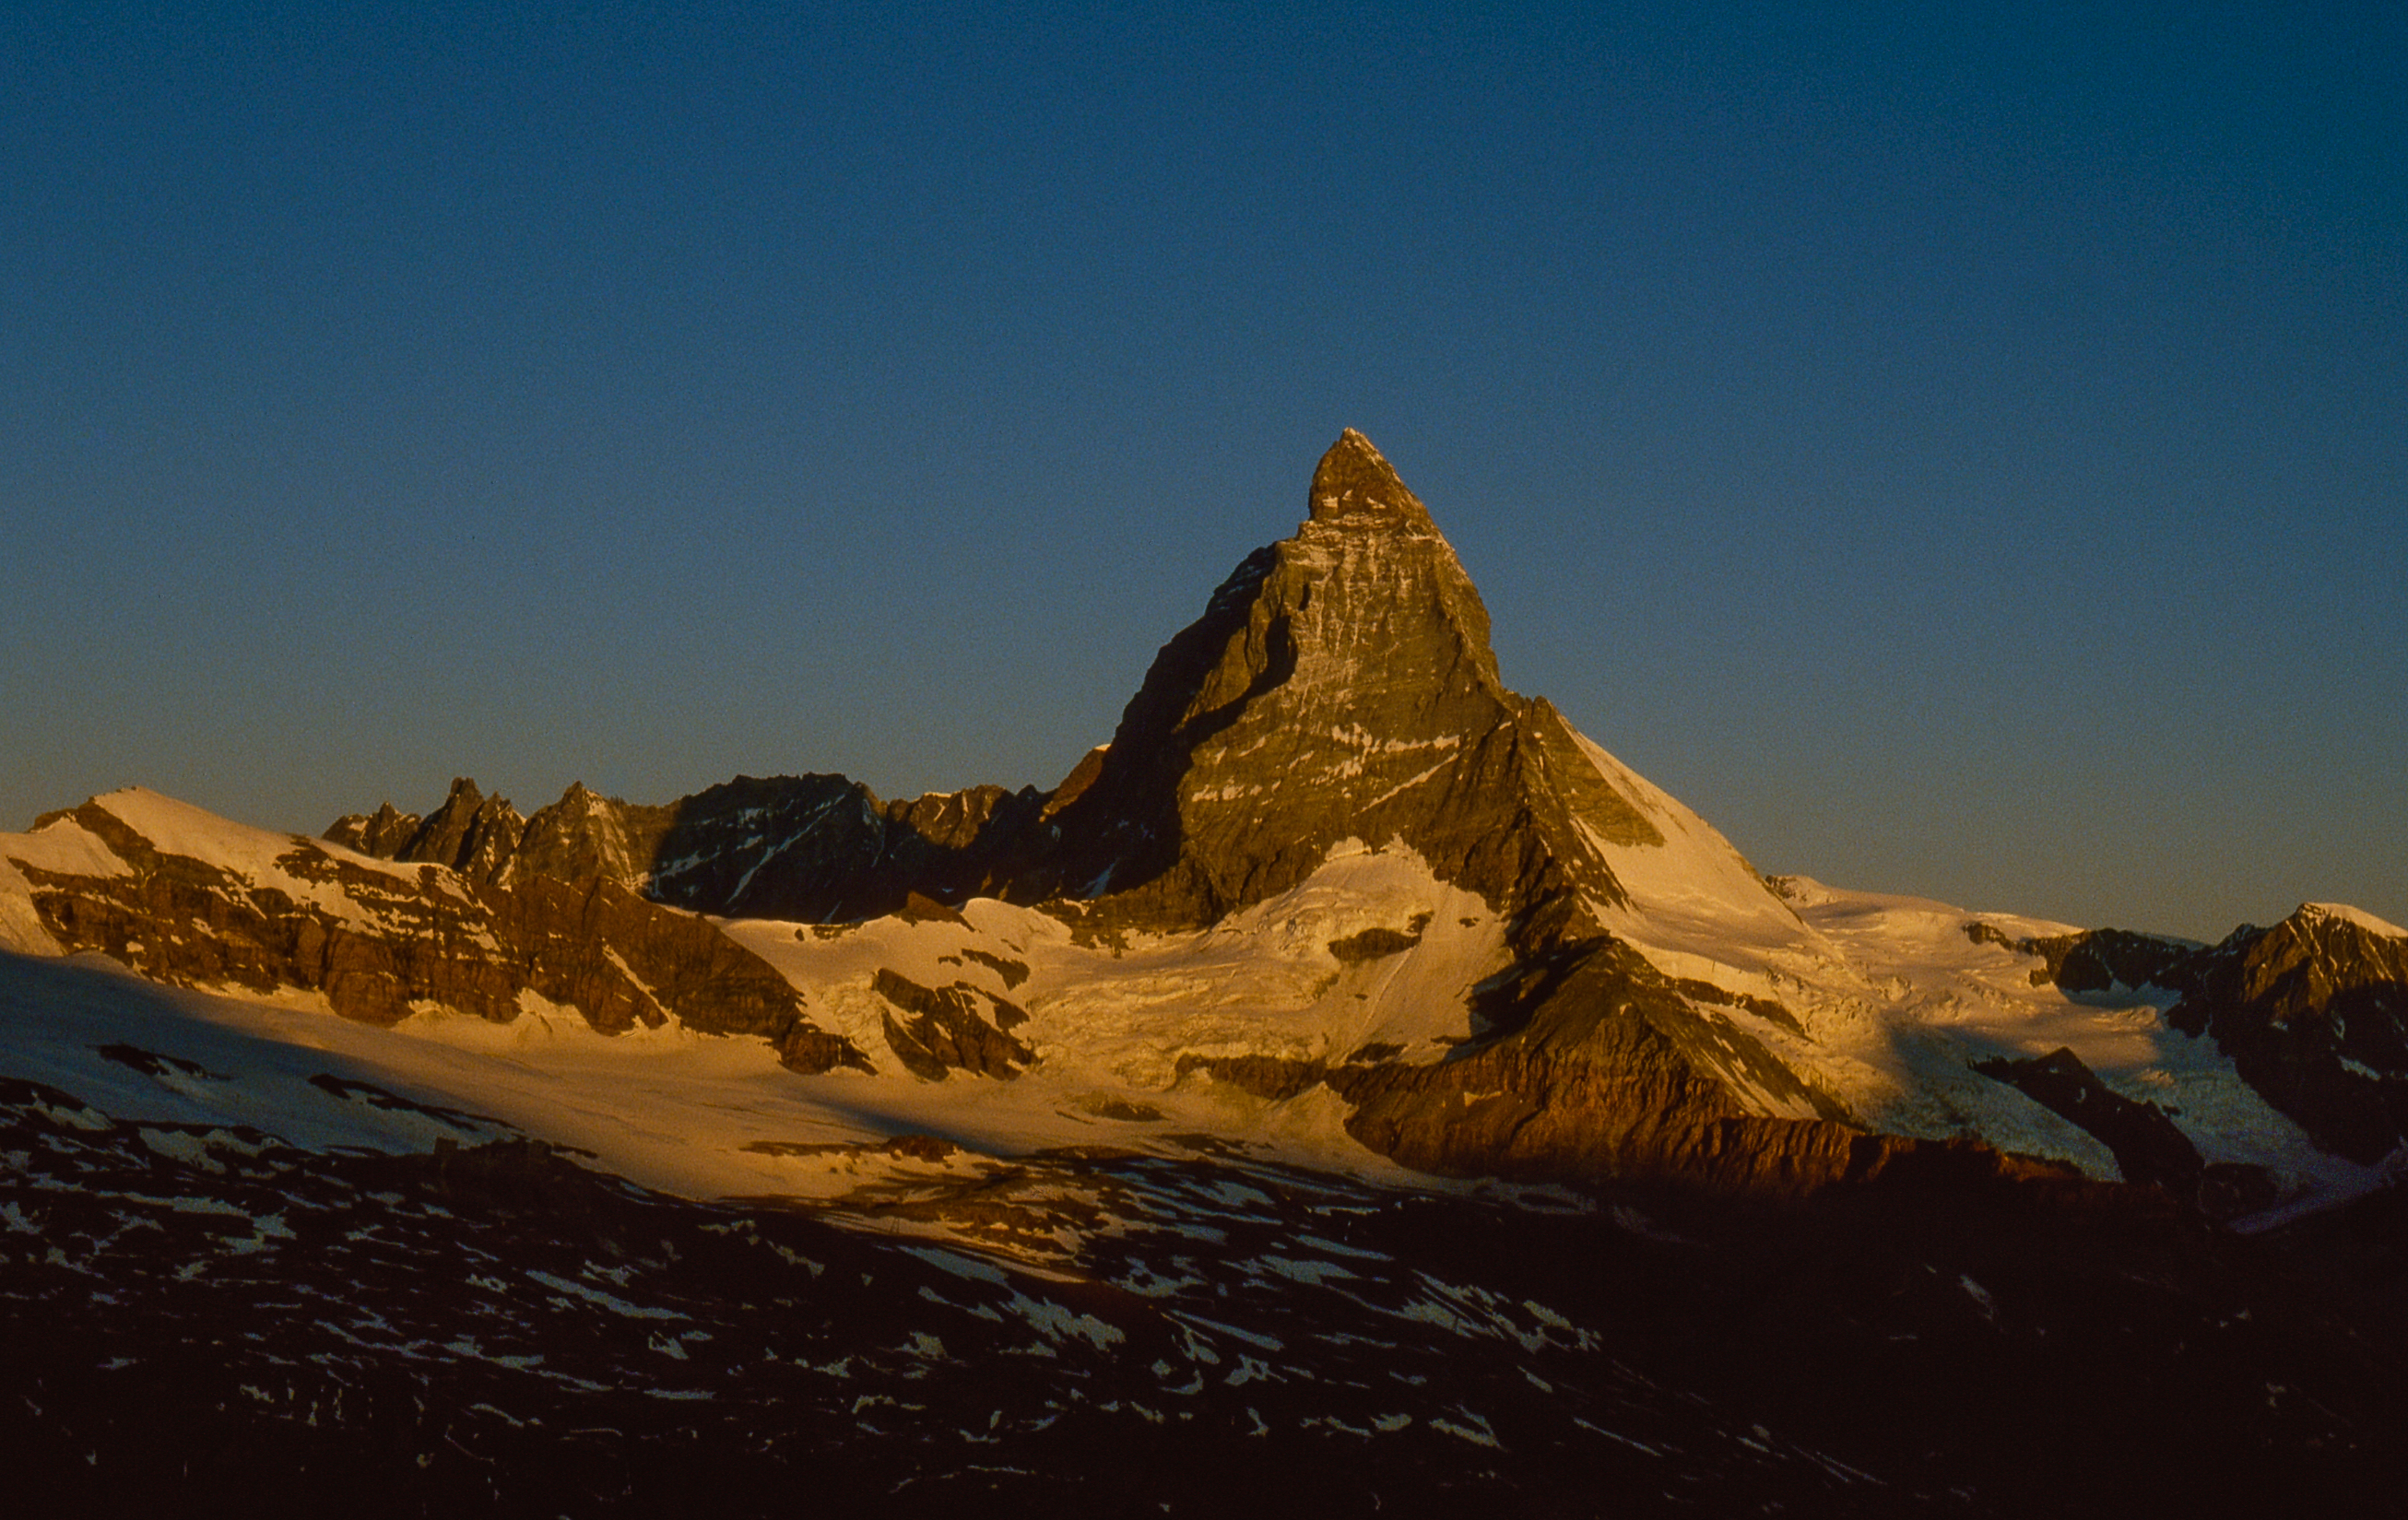 Matterhorn in the morning landscape